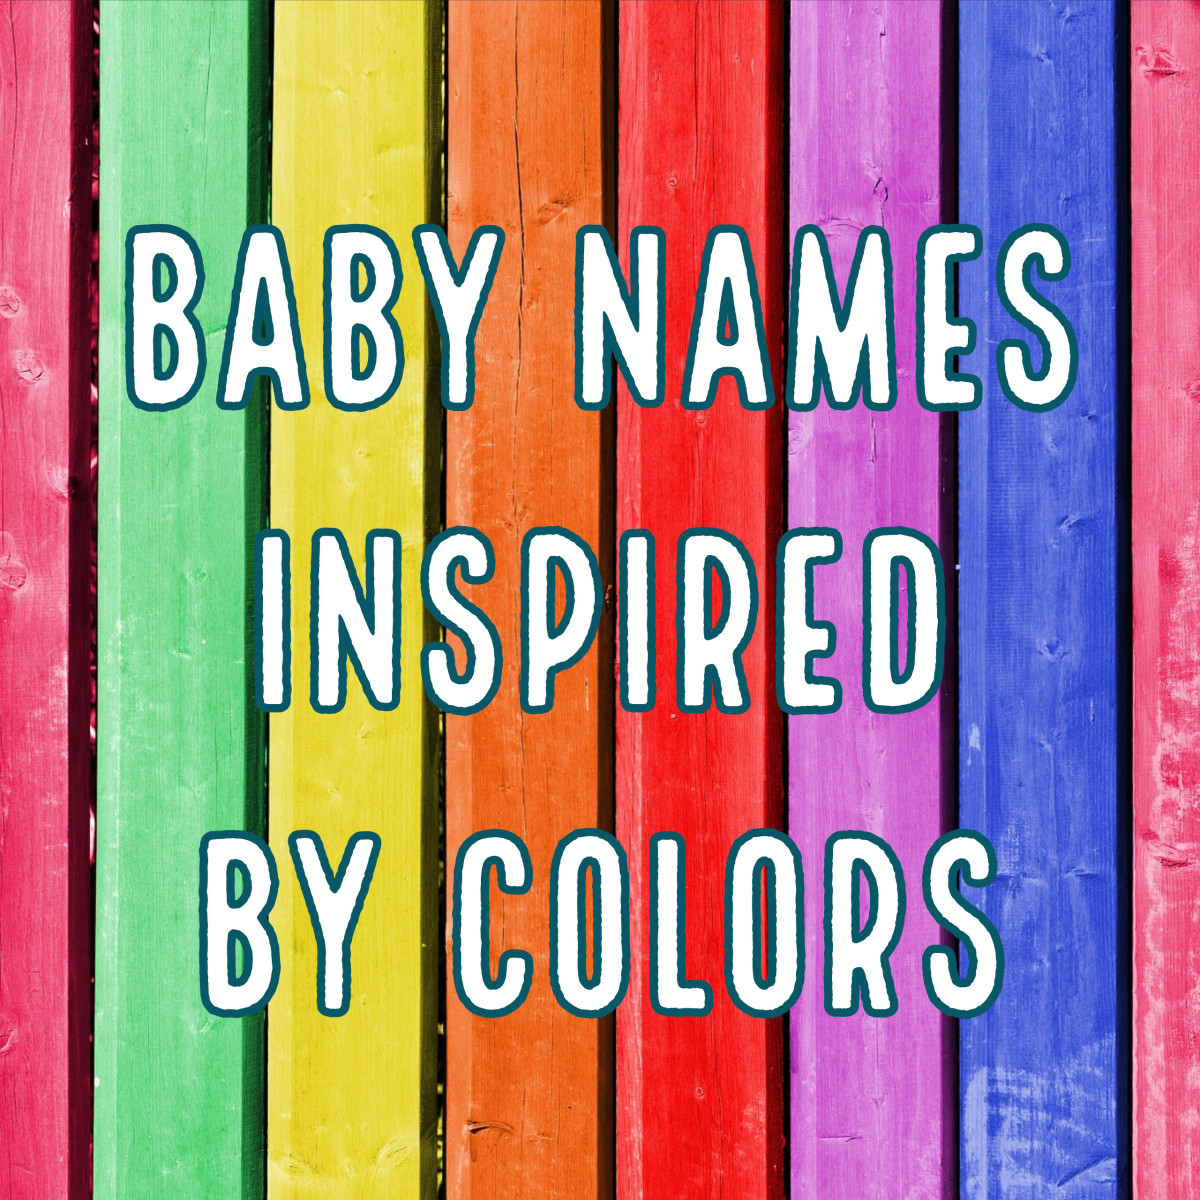 Retro-Cool, Vintage Baby Names for Girls | WeHaveKids